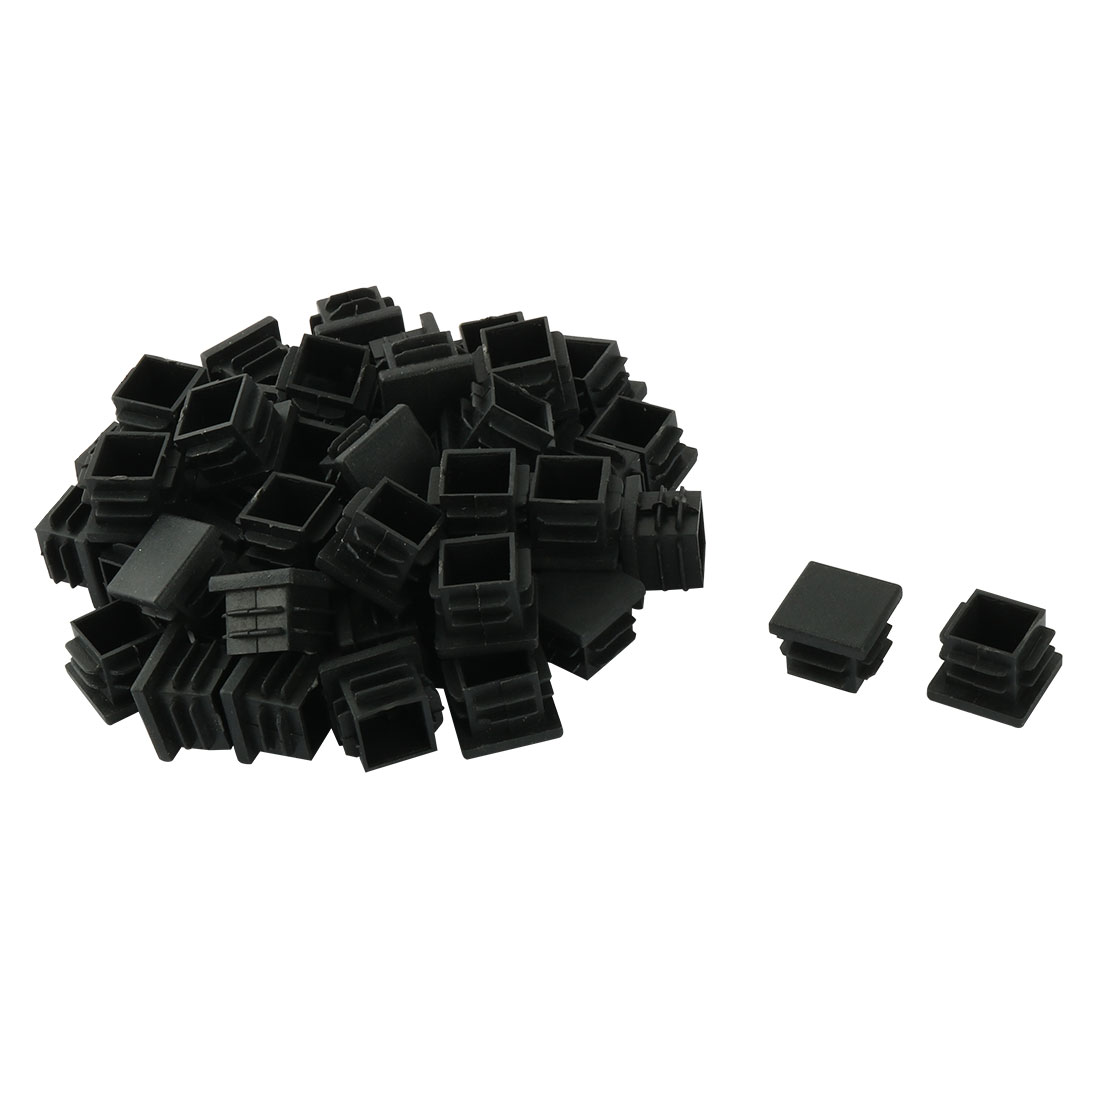 Furniture Table Chair Legs Plastic Square Tube Pipe Insert Cap Cover Black 19 x 19mm 50pcs